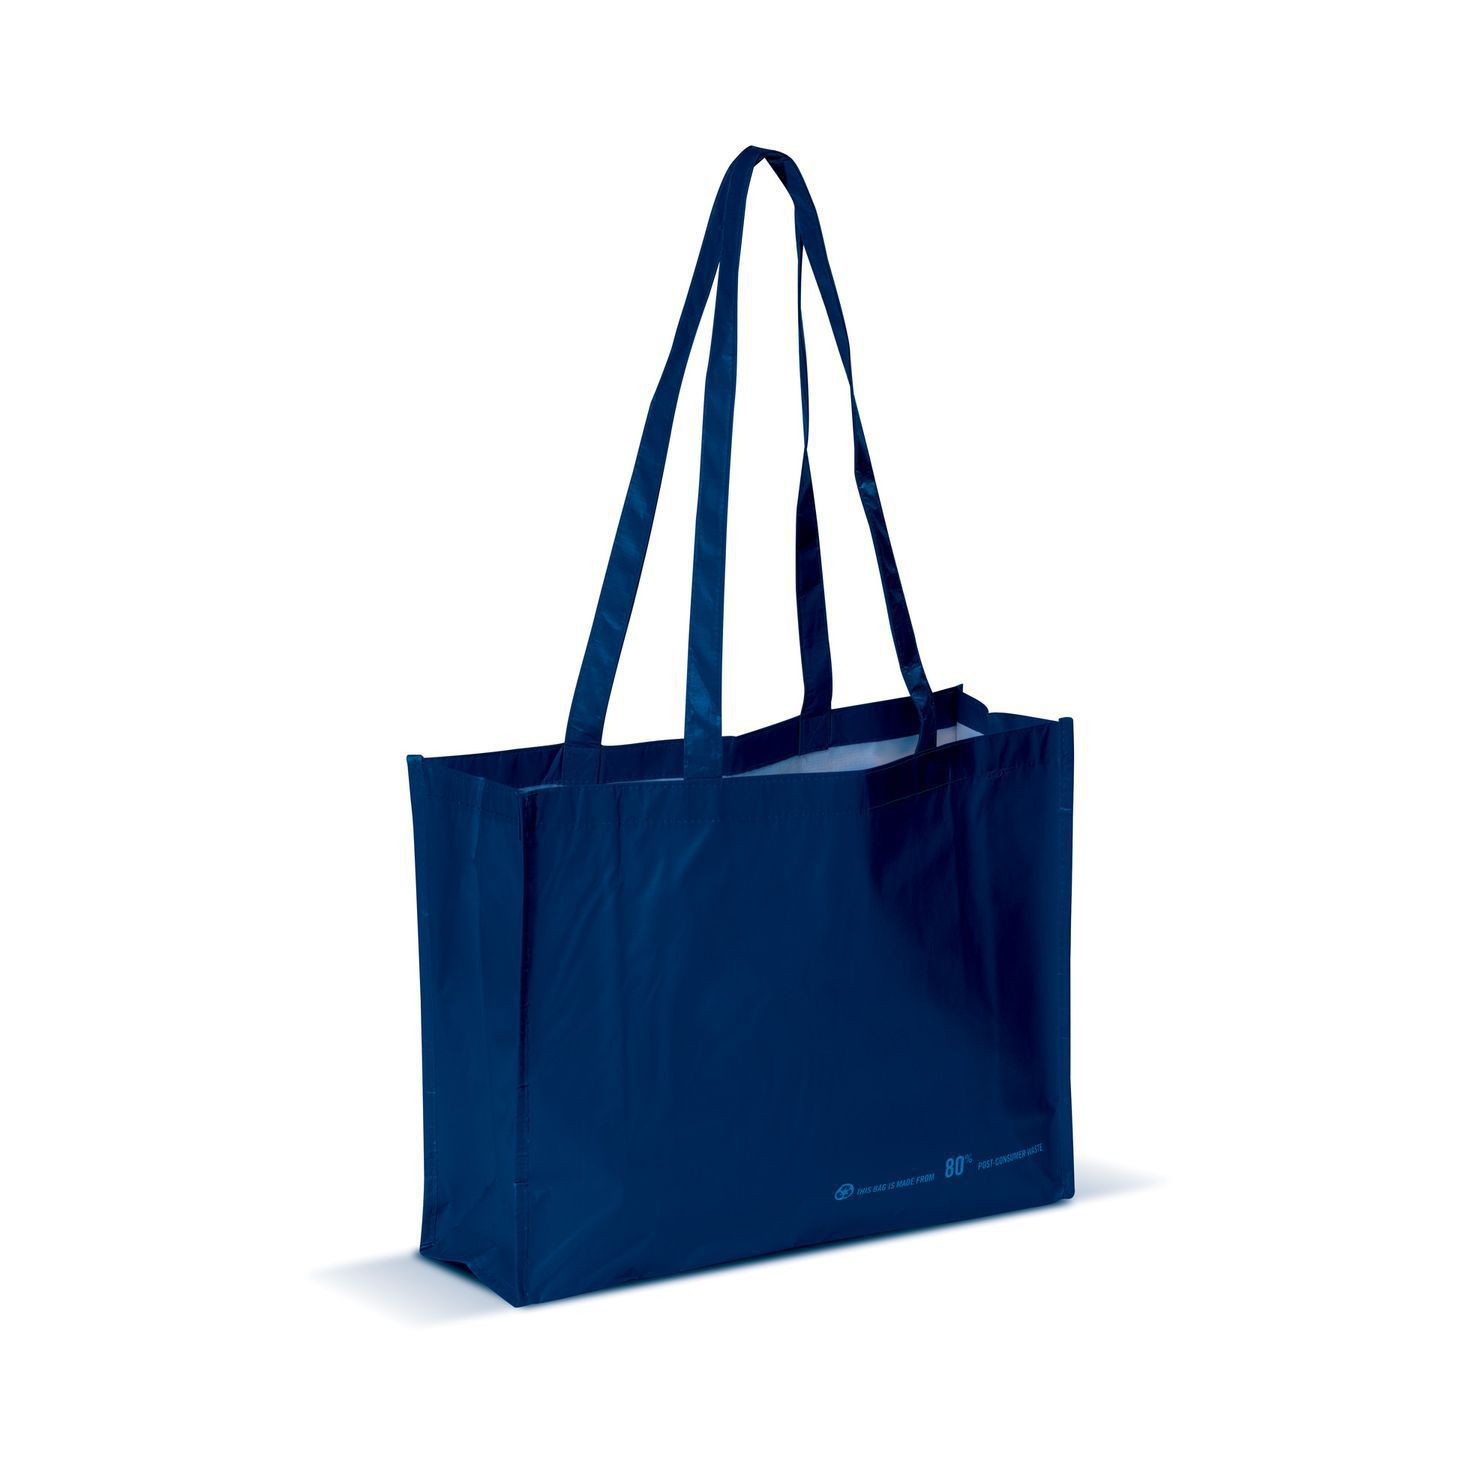 Donkerblauwe Shopper | Gerecycled PET